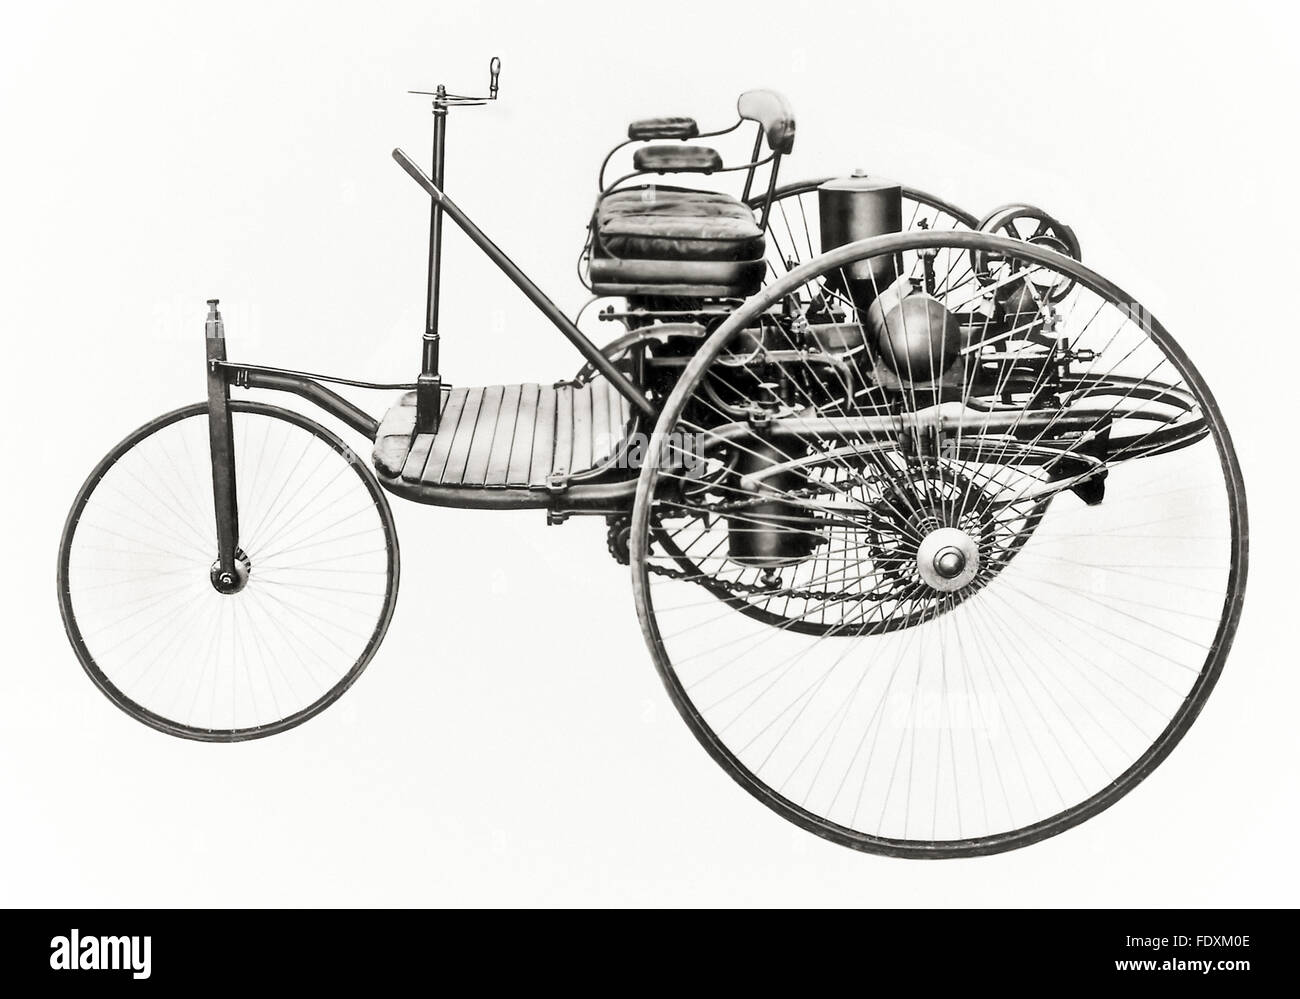 The 1885 Benz Patent-Motorwagen a three-wheeled automobile with a ...